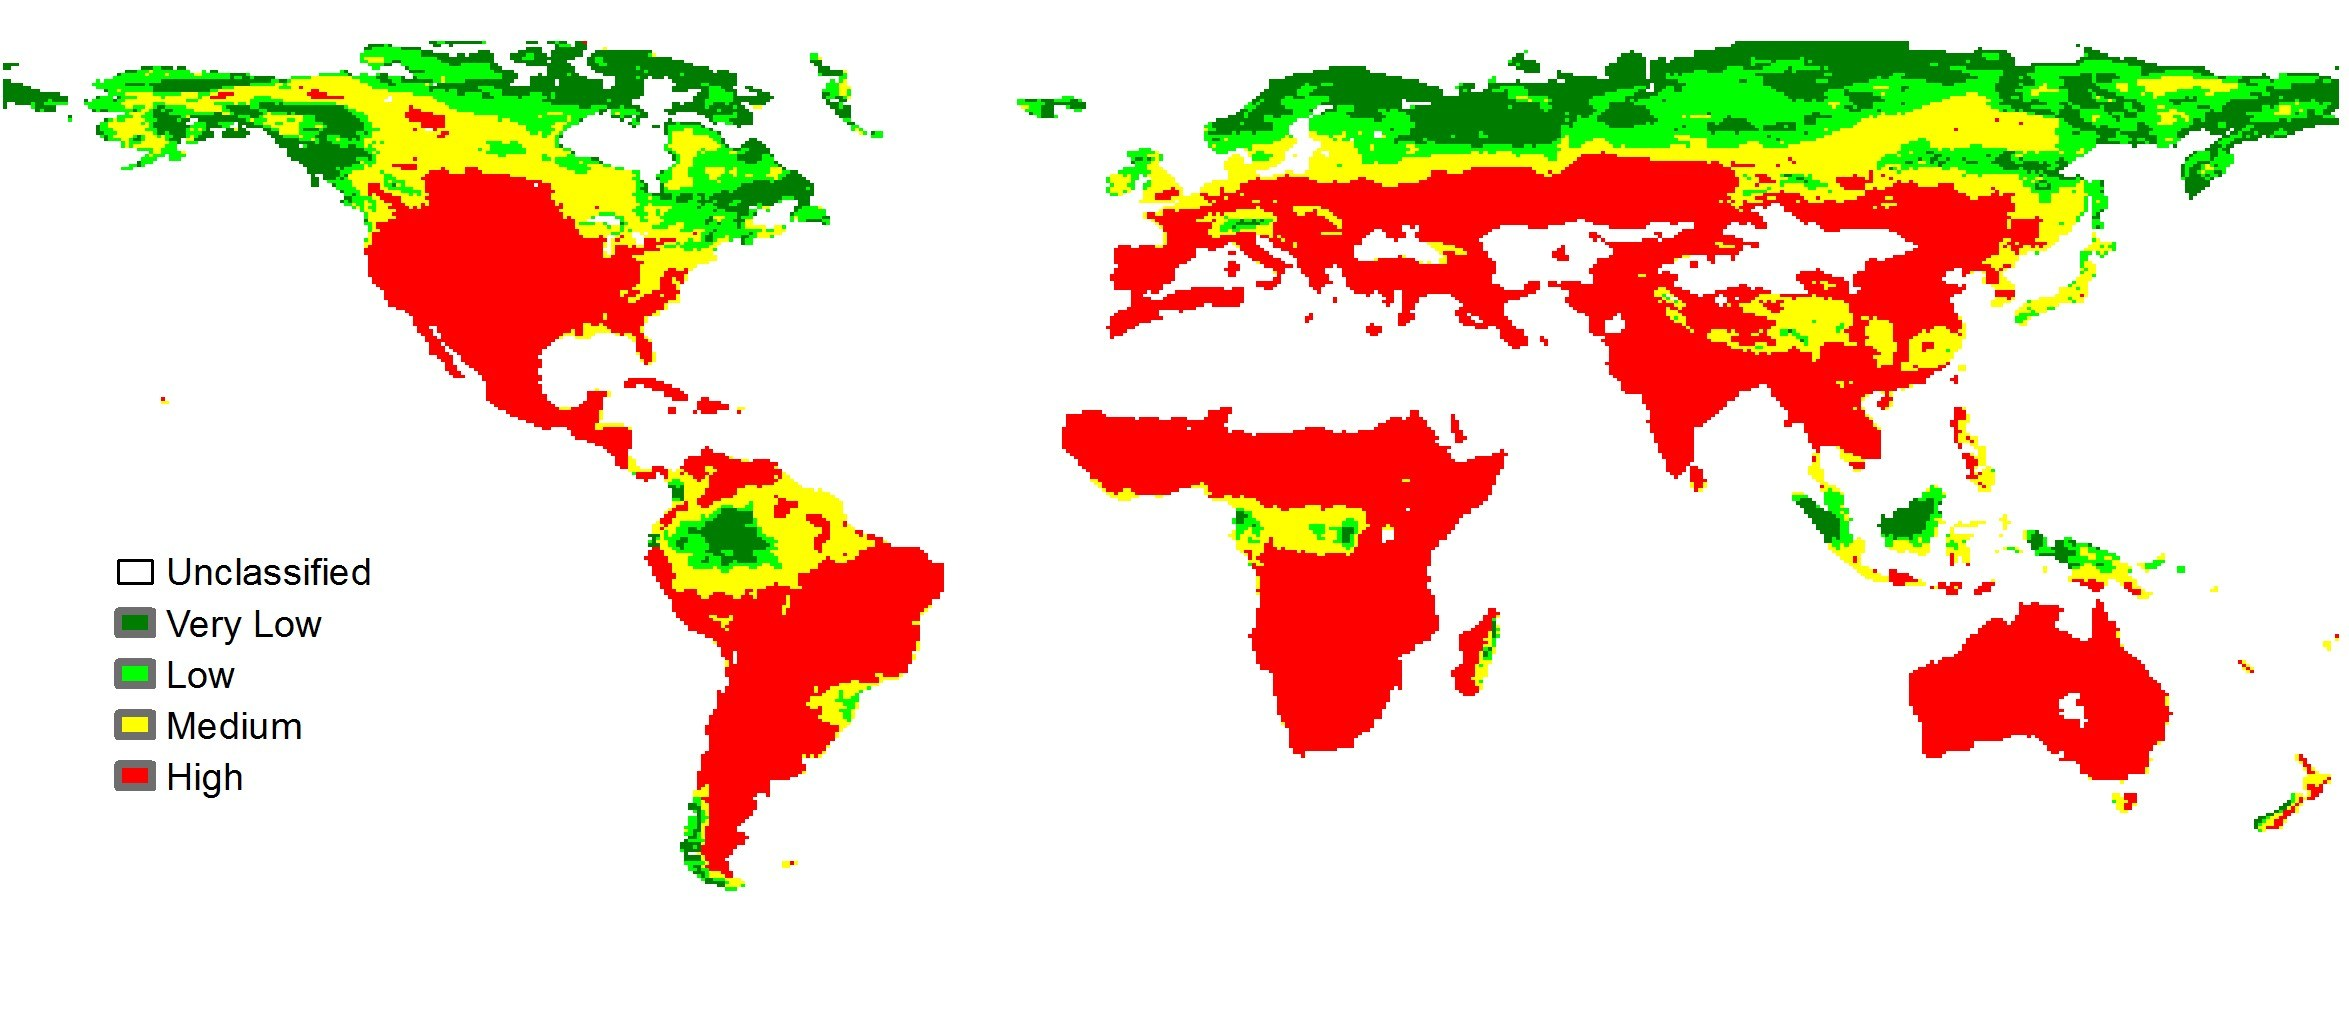 Graphic of the world showing fire risk